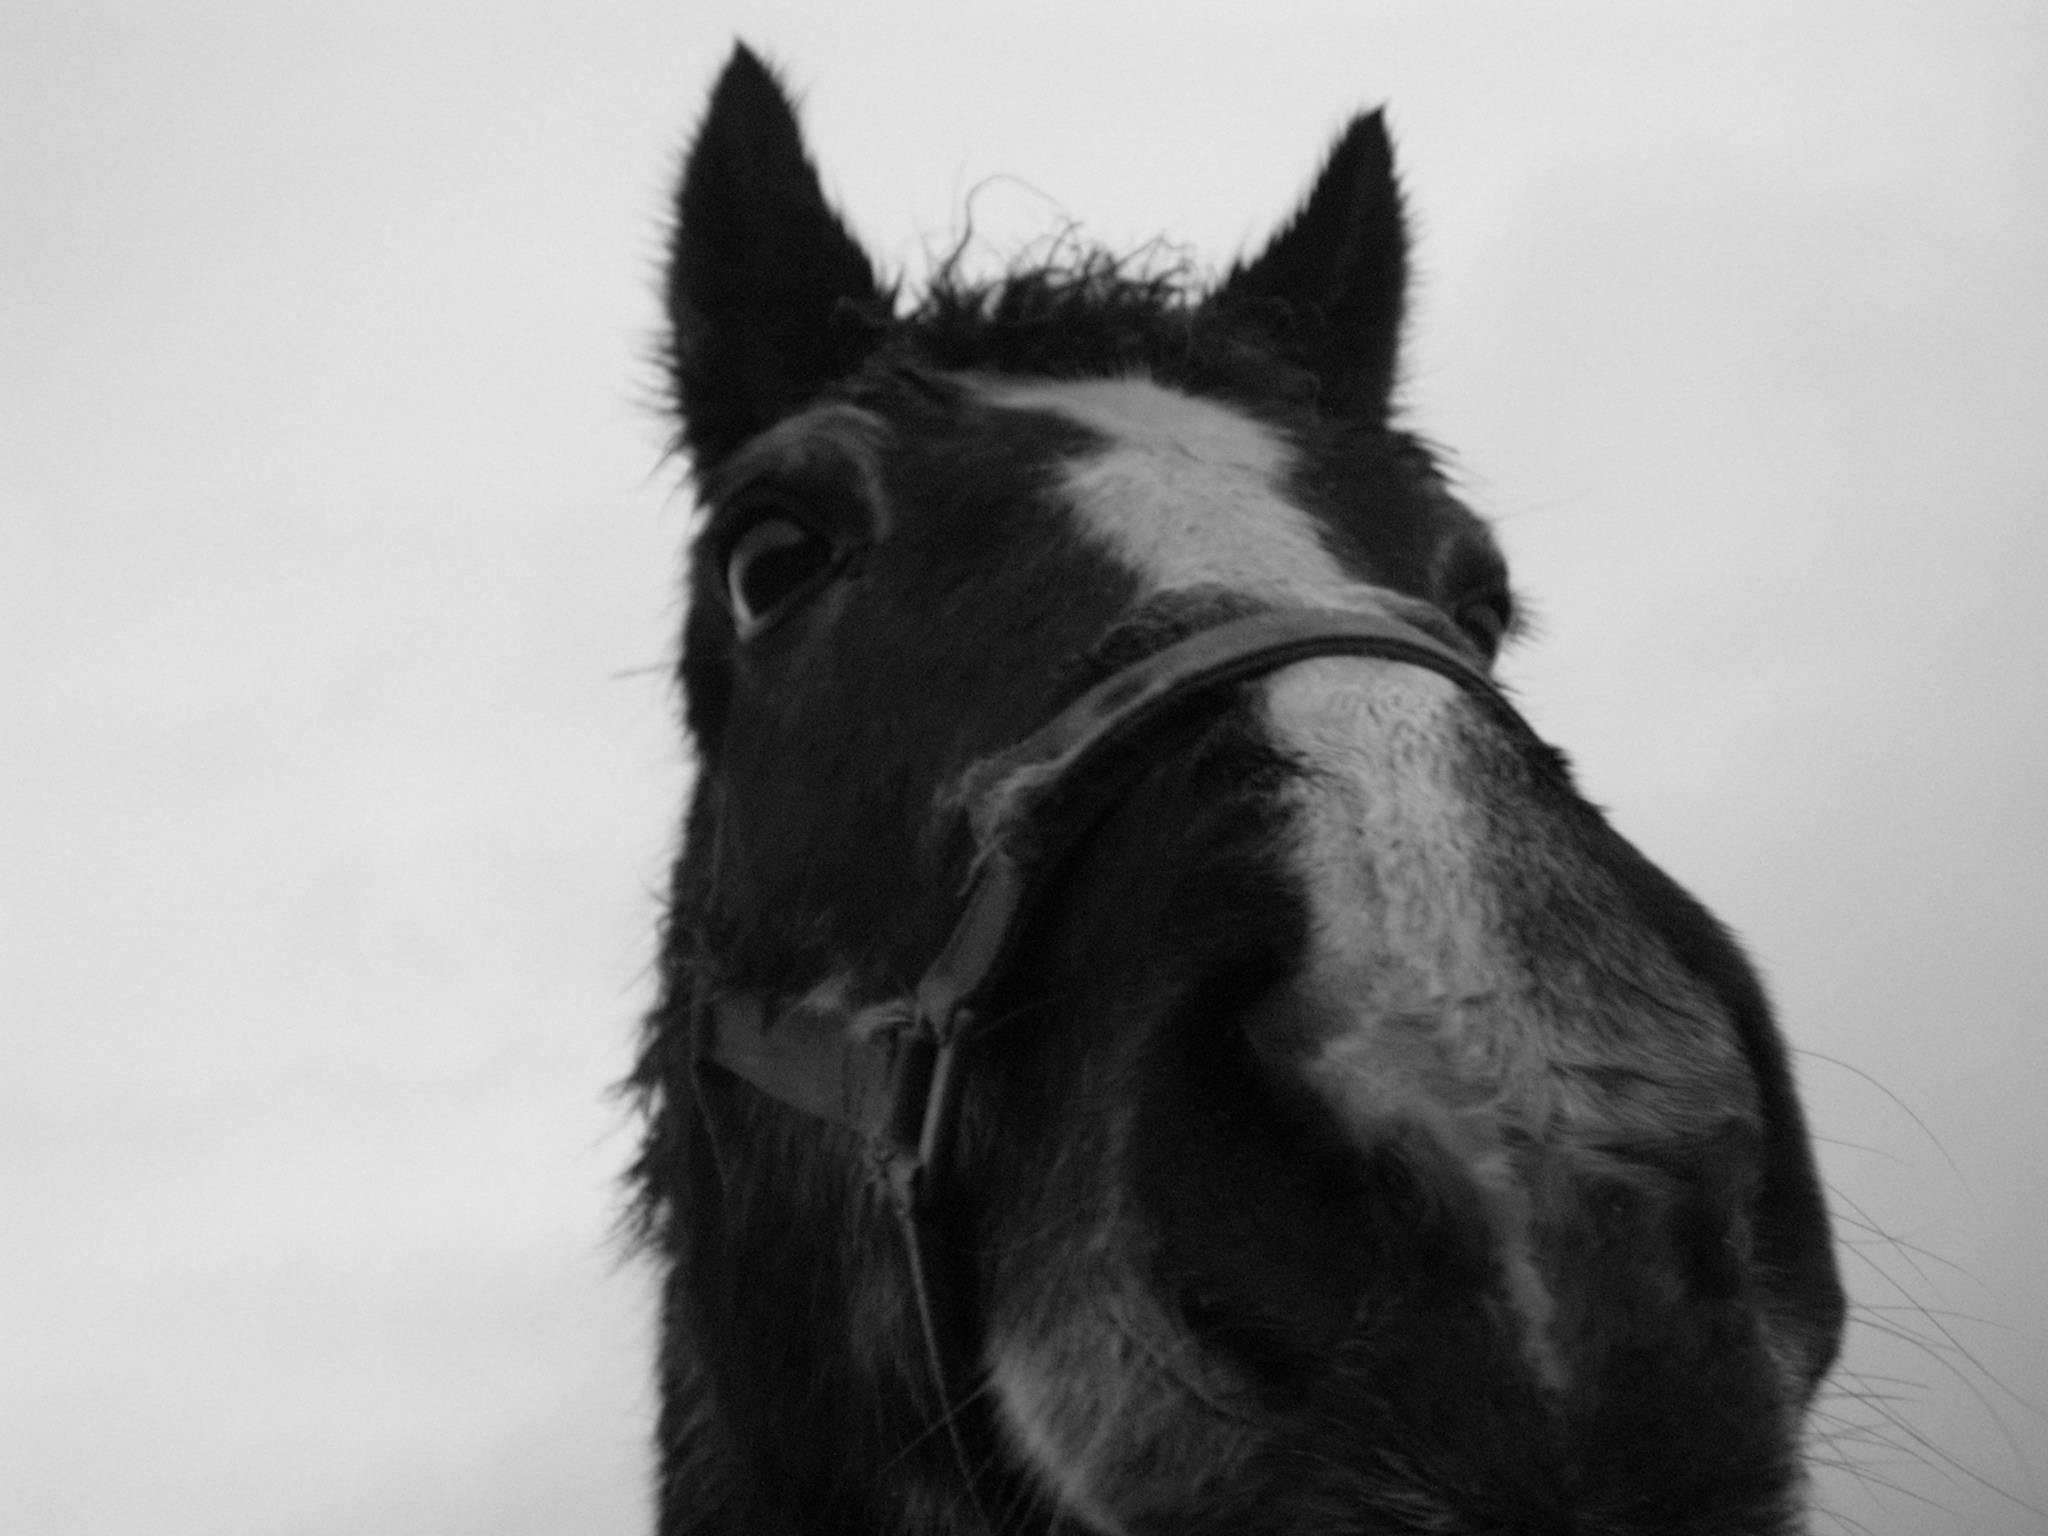 horse head black and white nose hairs